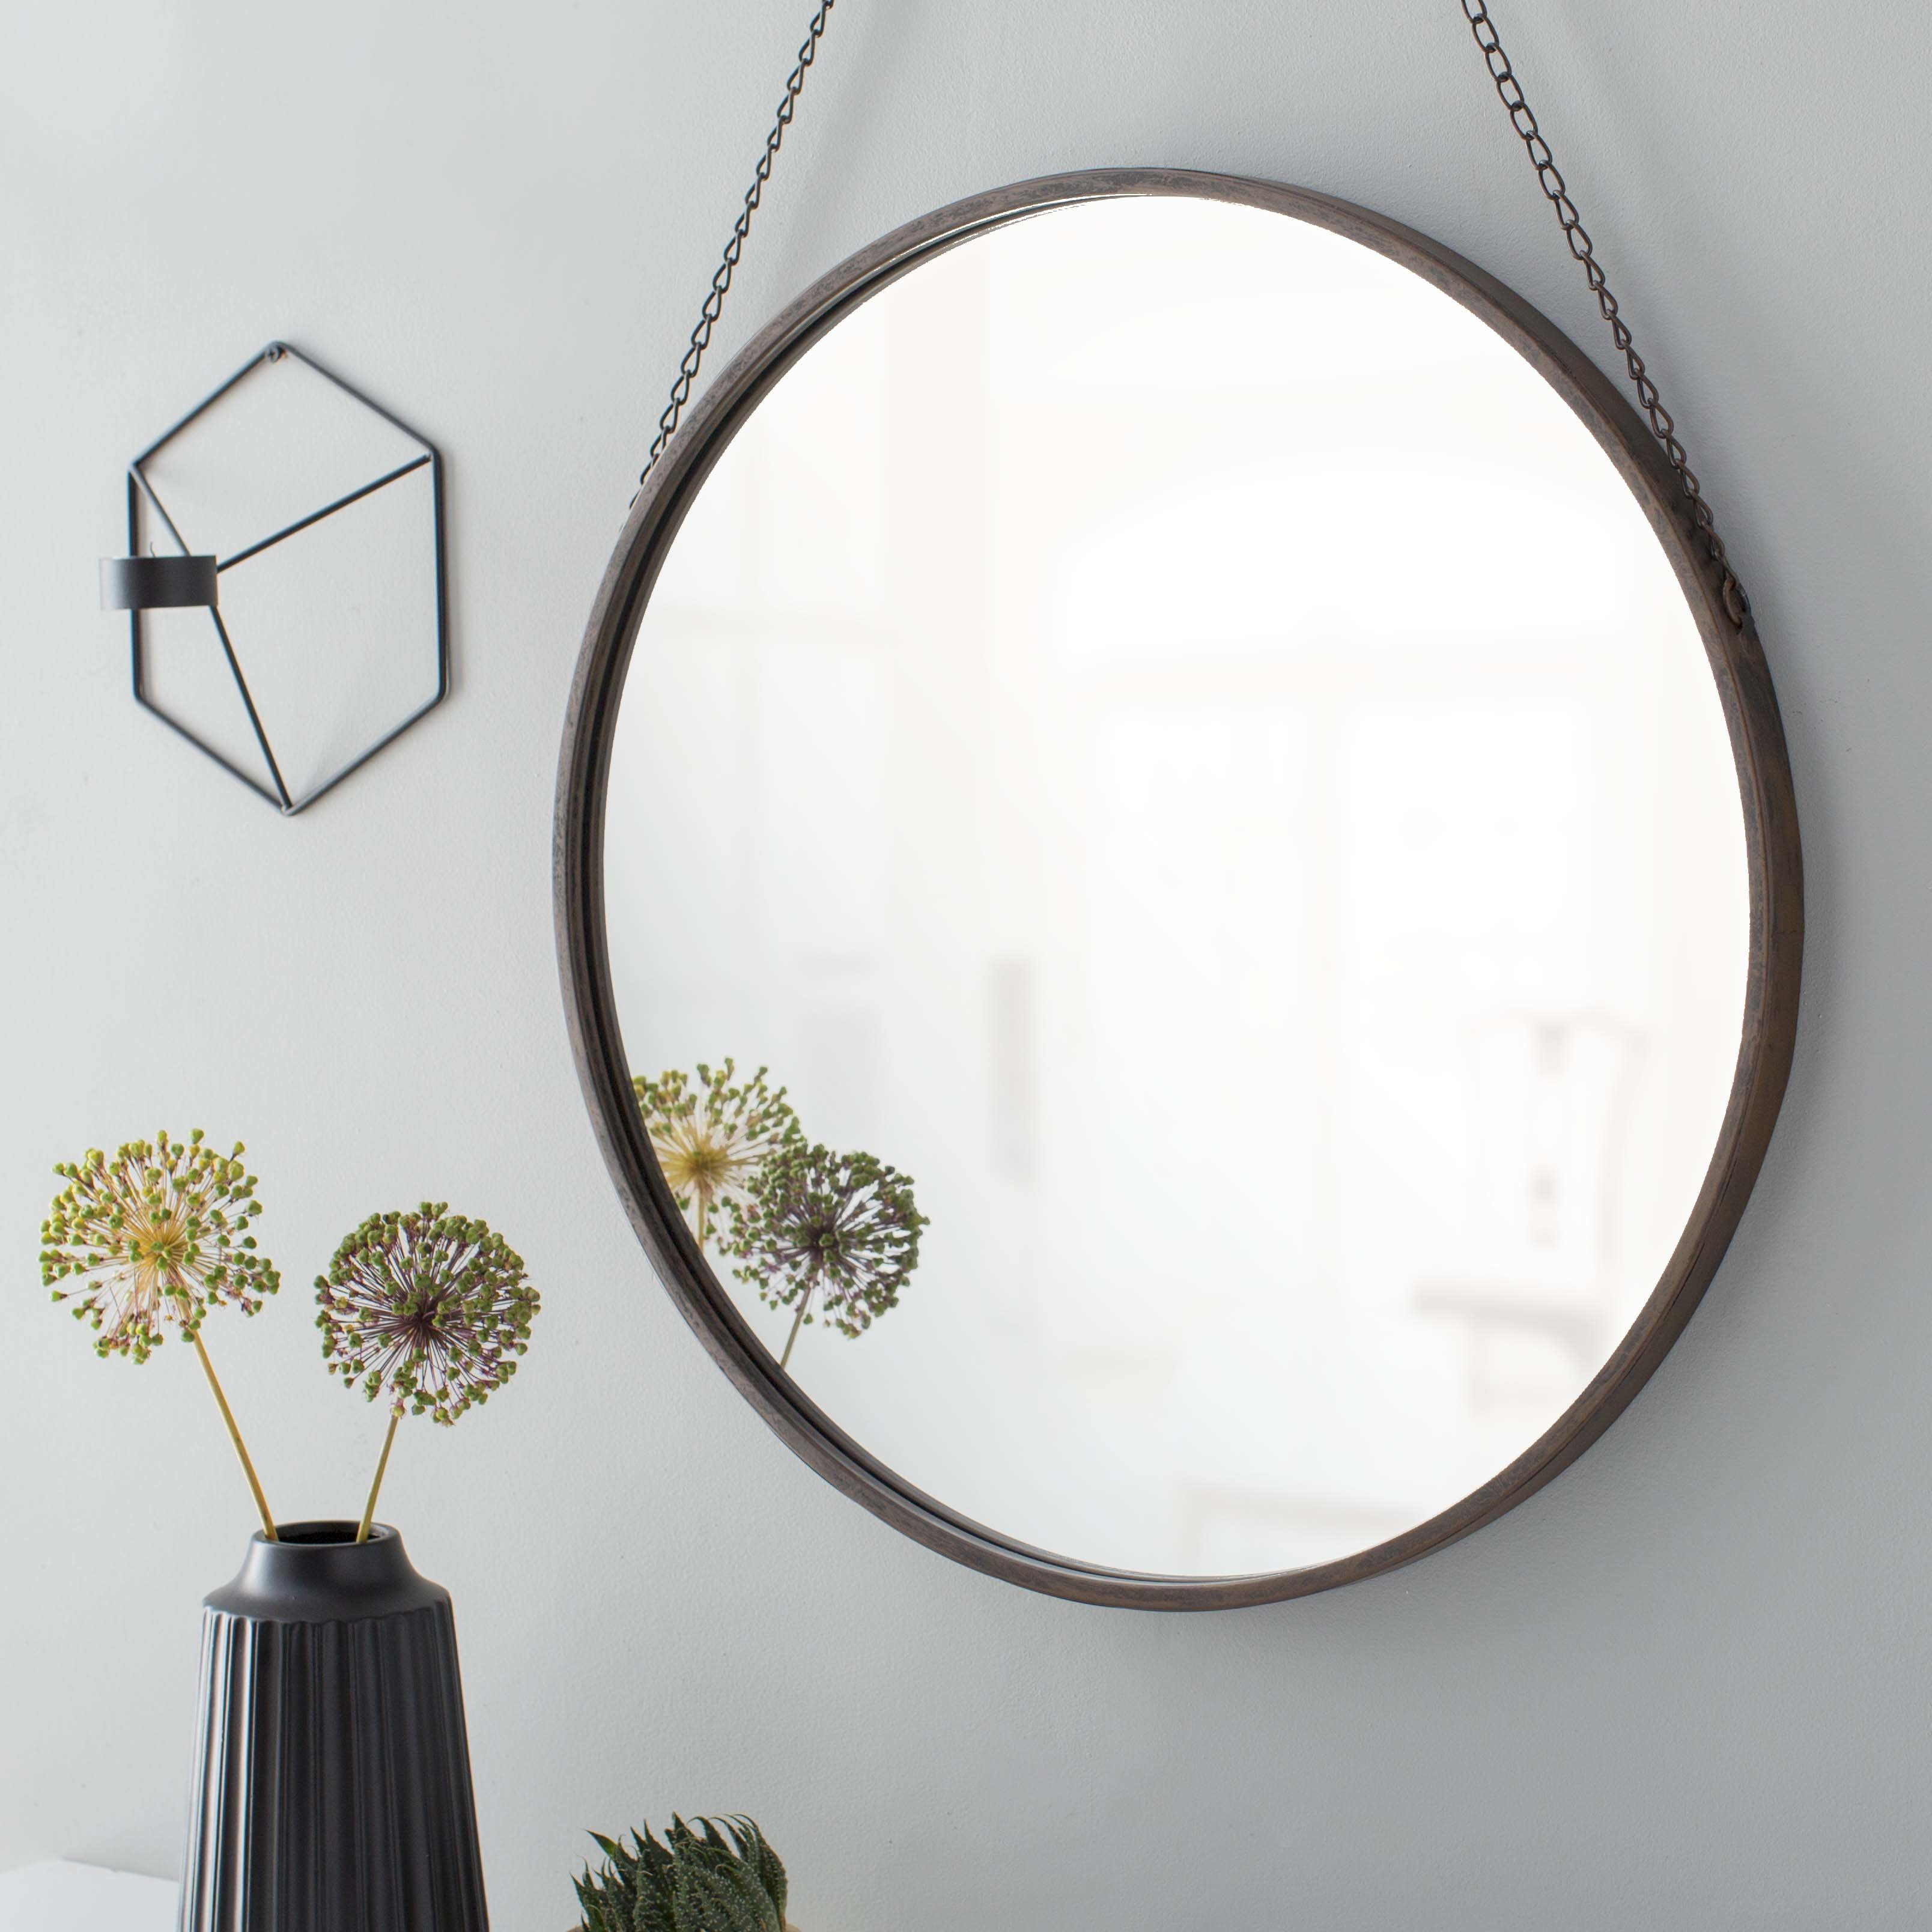 Hardison With Chain Hanger Accent Mirror For Accent Mirrors (Image 17 of 20)